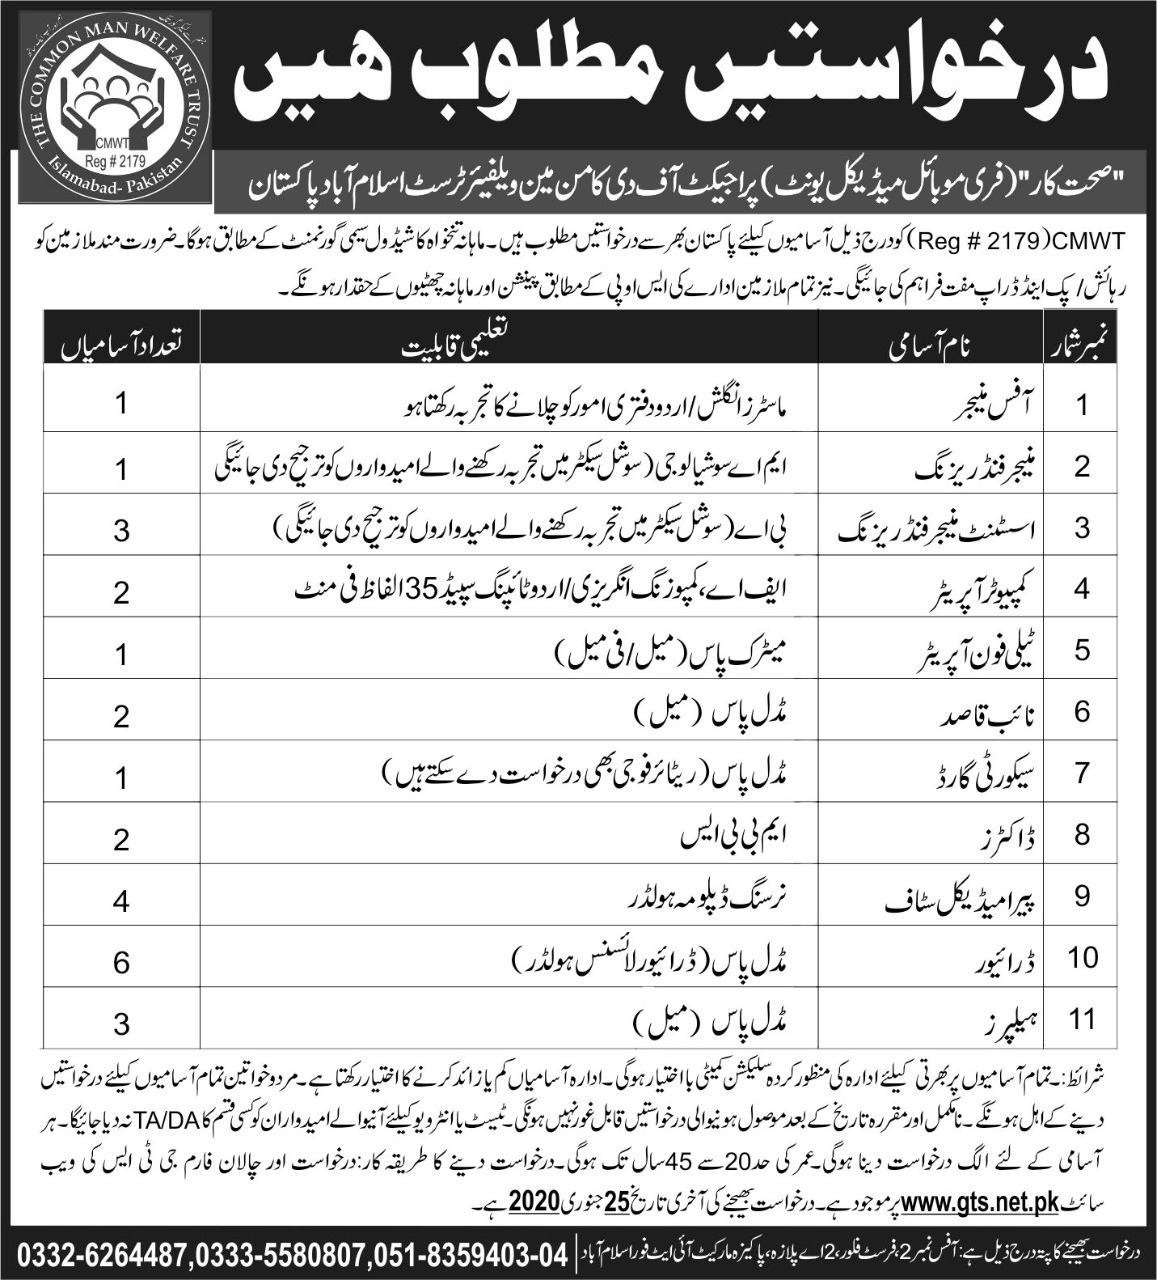 The Common Man Welfare Trust CMWT Islamabad Jobs 2020 Pakistan